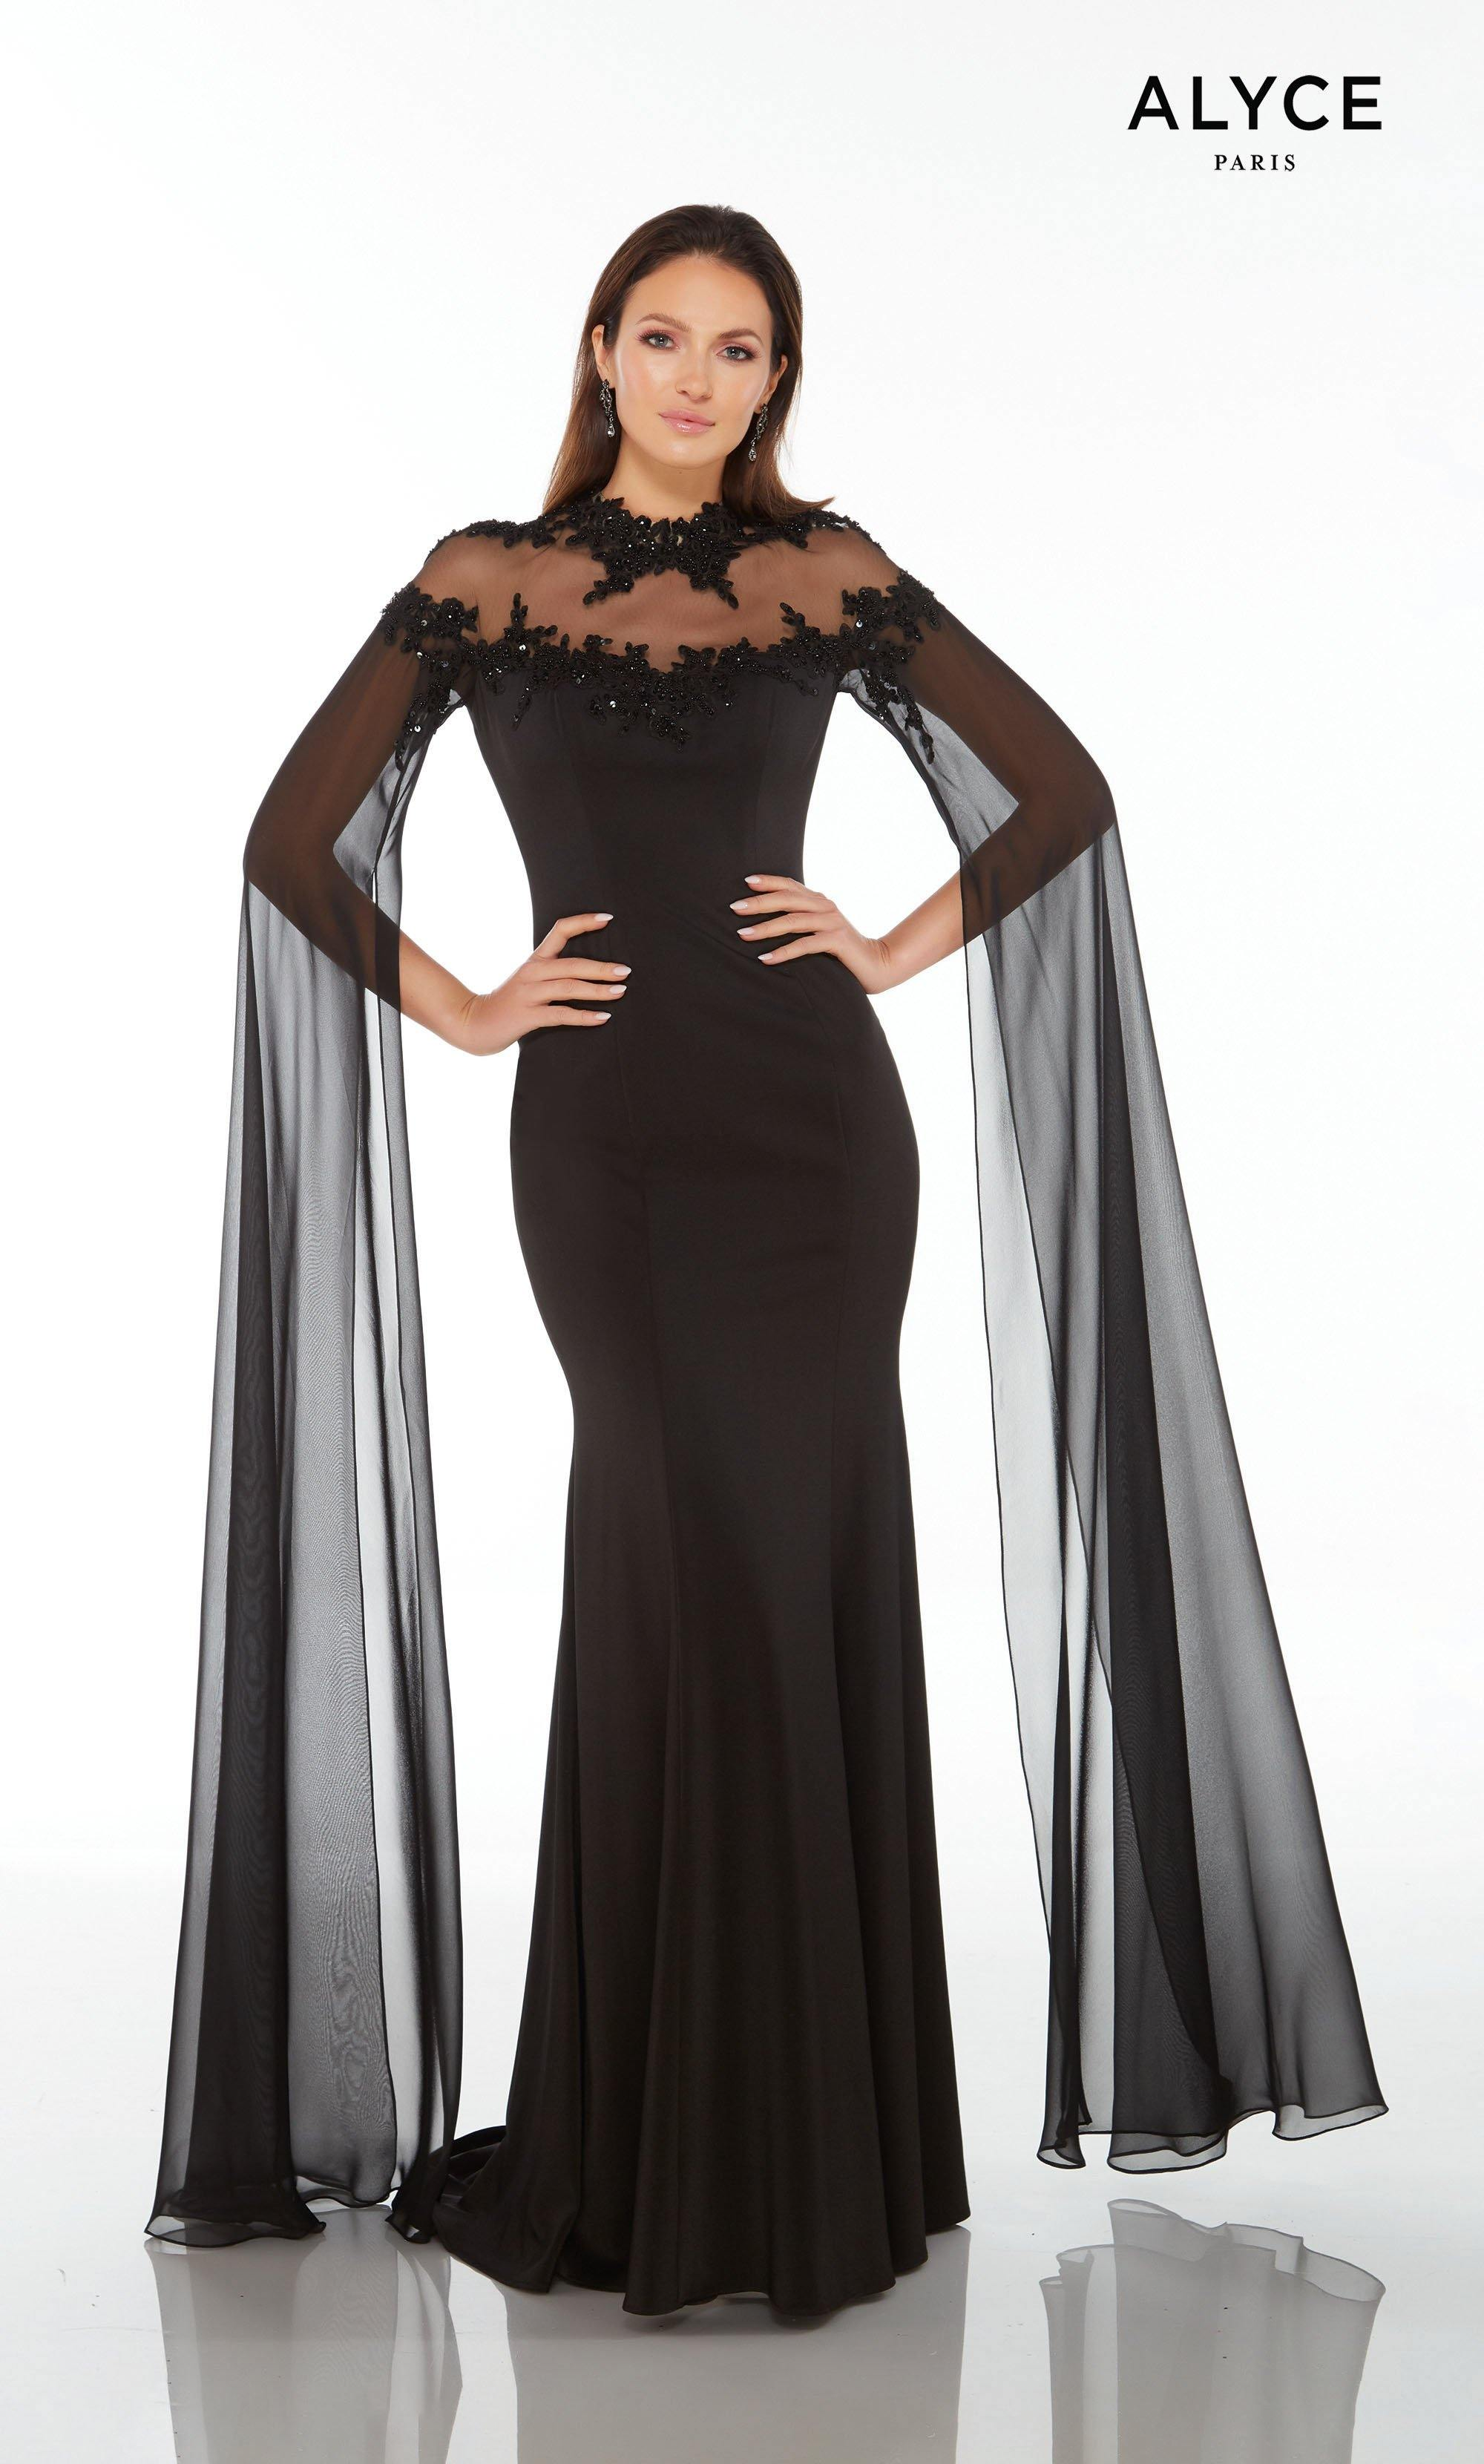 Black stretch crepe-chiffon formal dress with an off the shoulder illusion, beaded neckline and floor length flowy sleeves